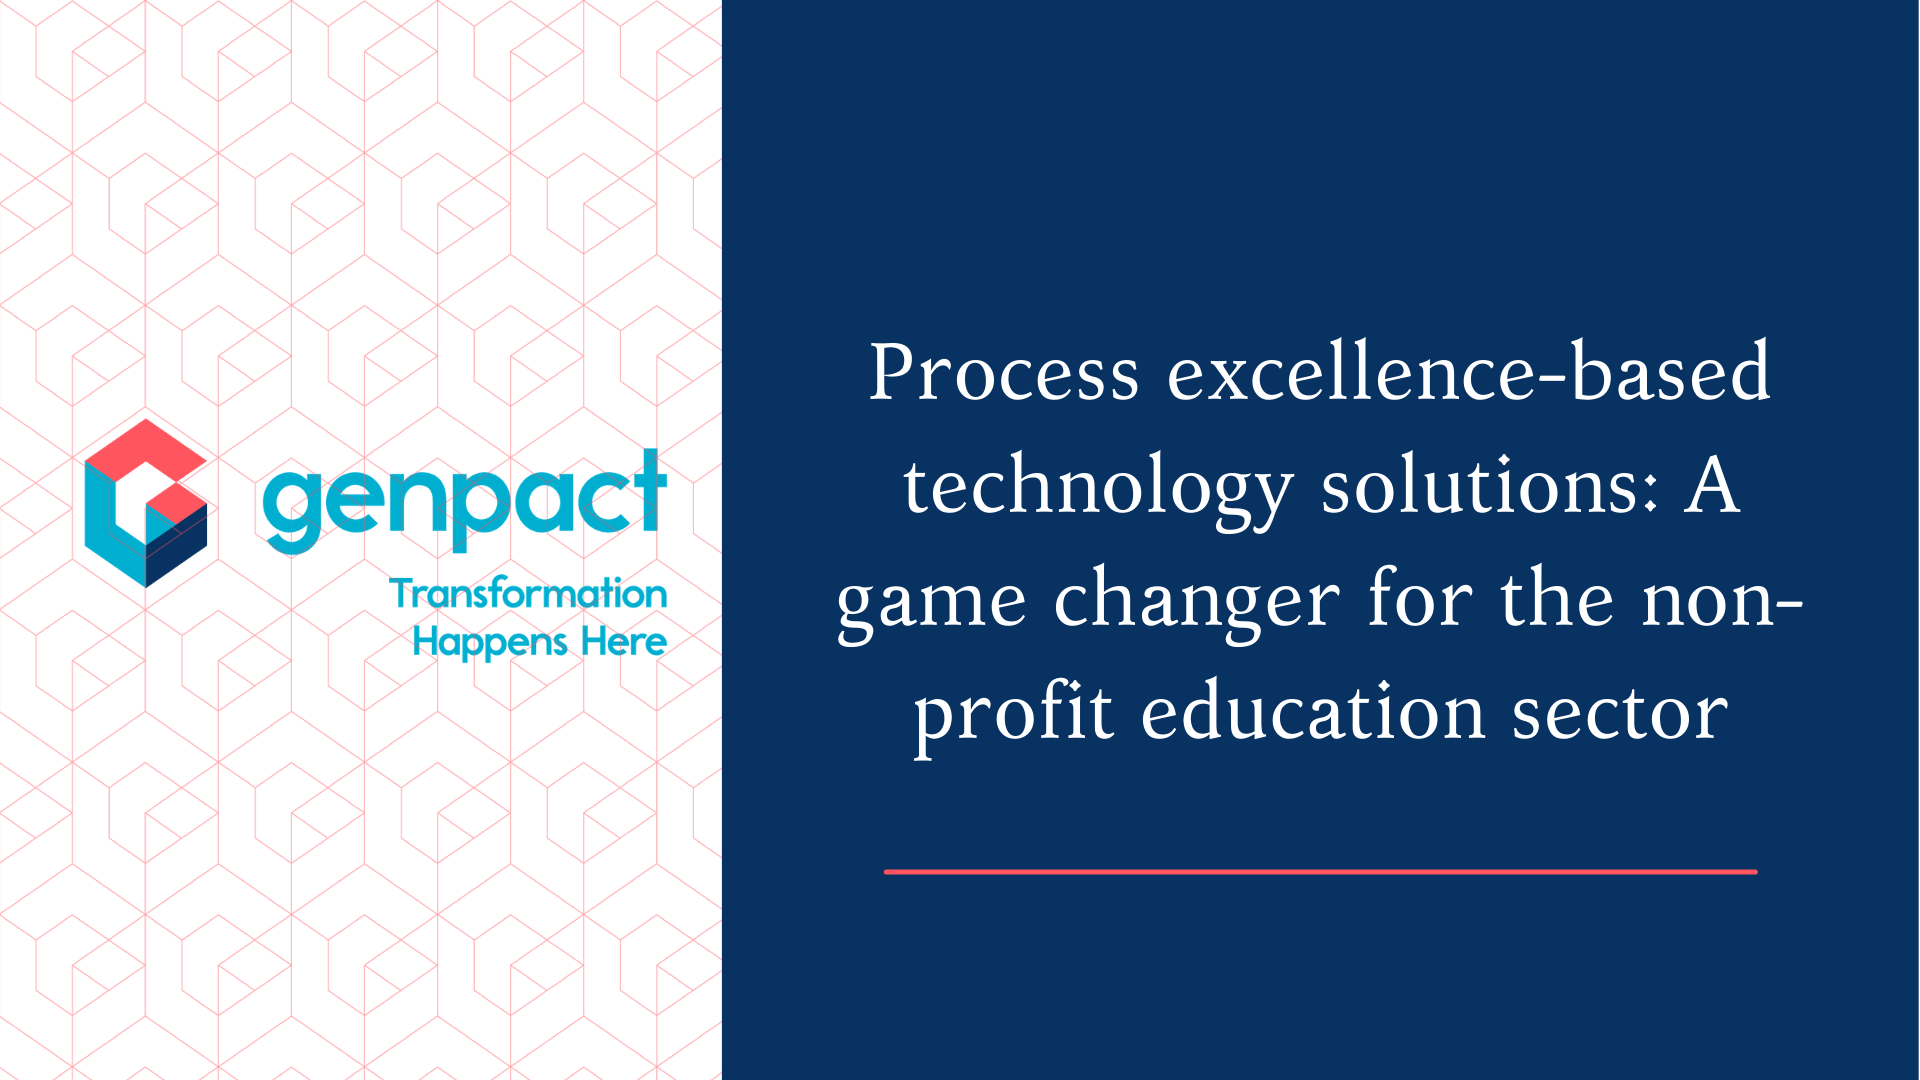 Process excellence-based technology solutions: a game changer for the non-profit education sector